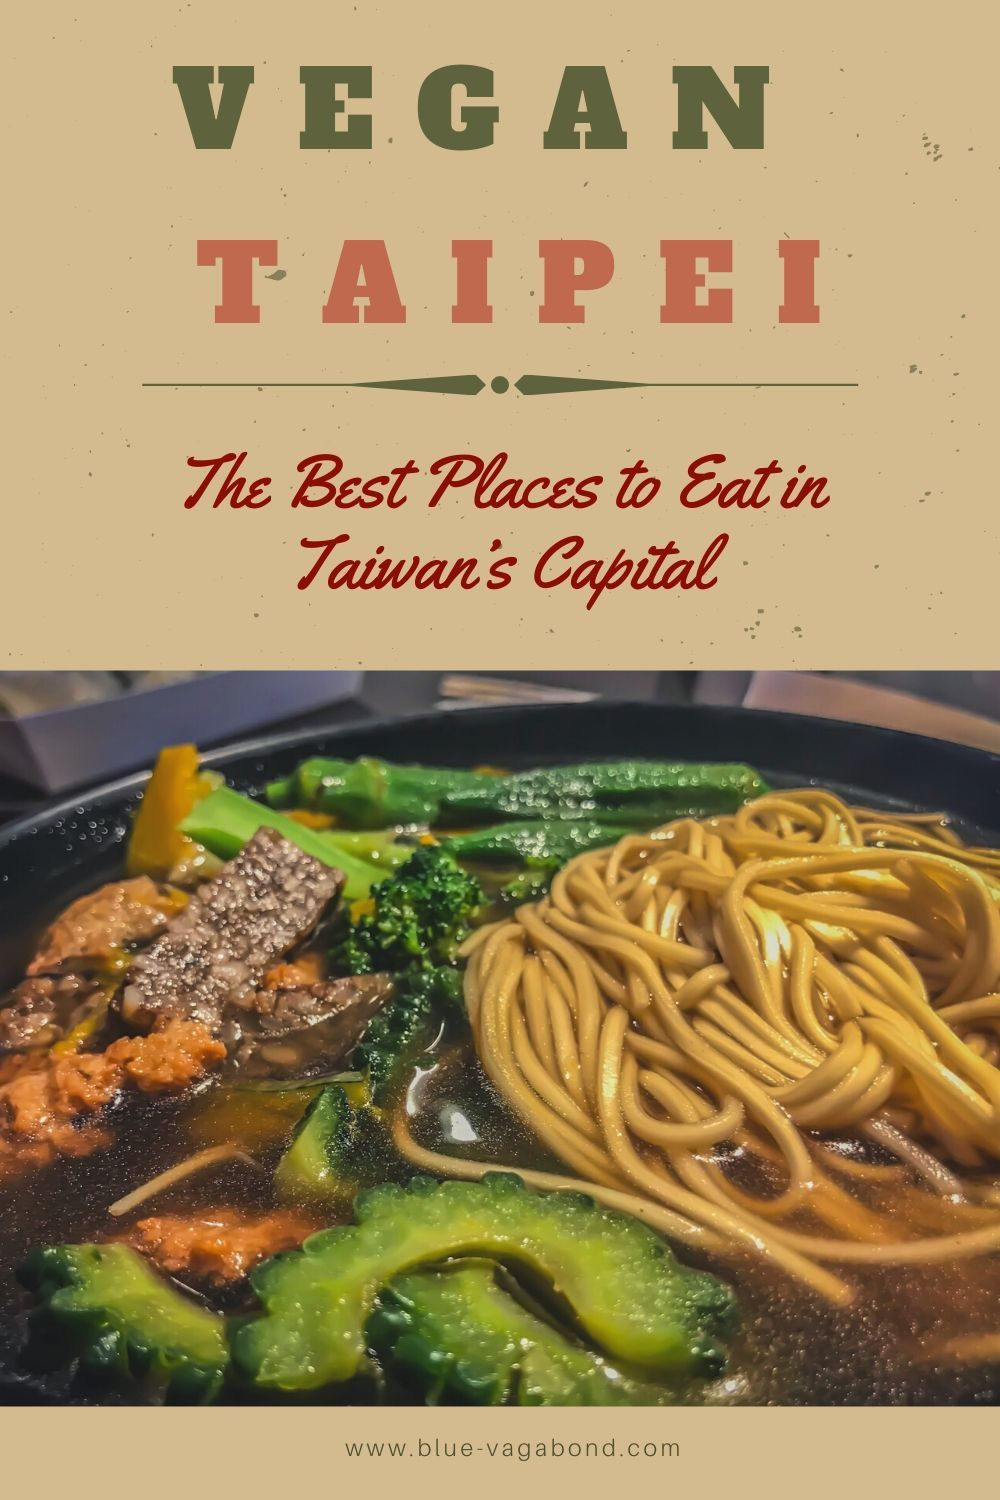 Vegan In Taipei Plant Based Food In Taiwan S Capital Eating Out It In Restaurants Cafes Markets In 2020 Plant Based Recipes Places To Eat Best Places To Eat